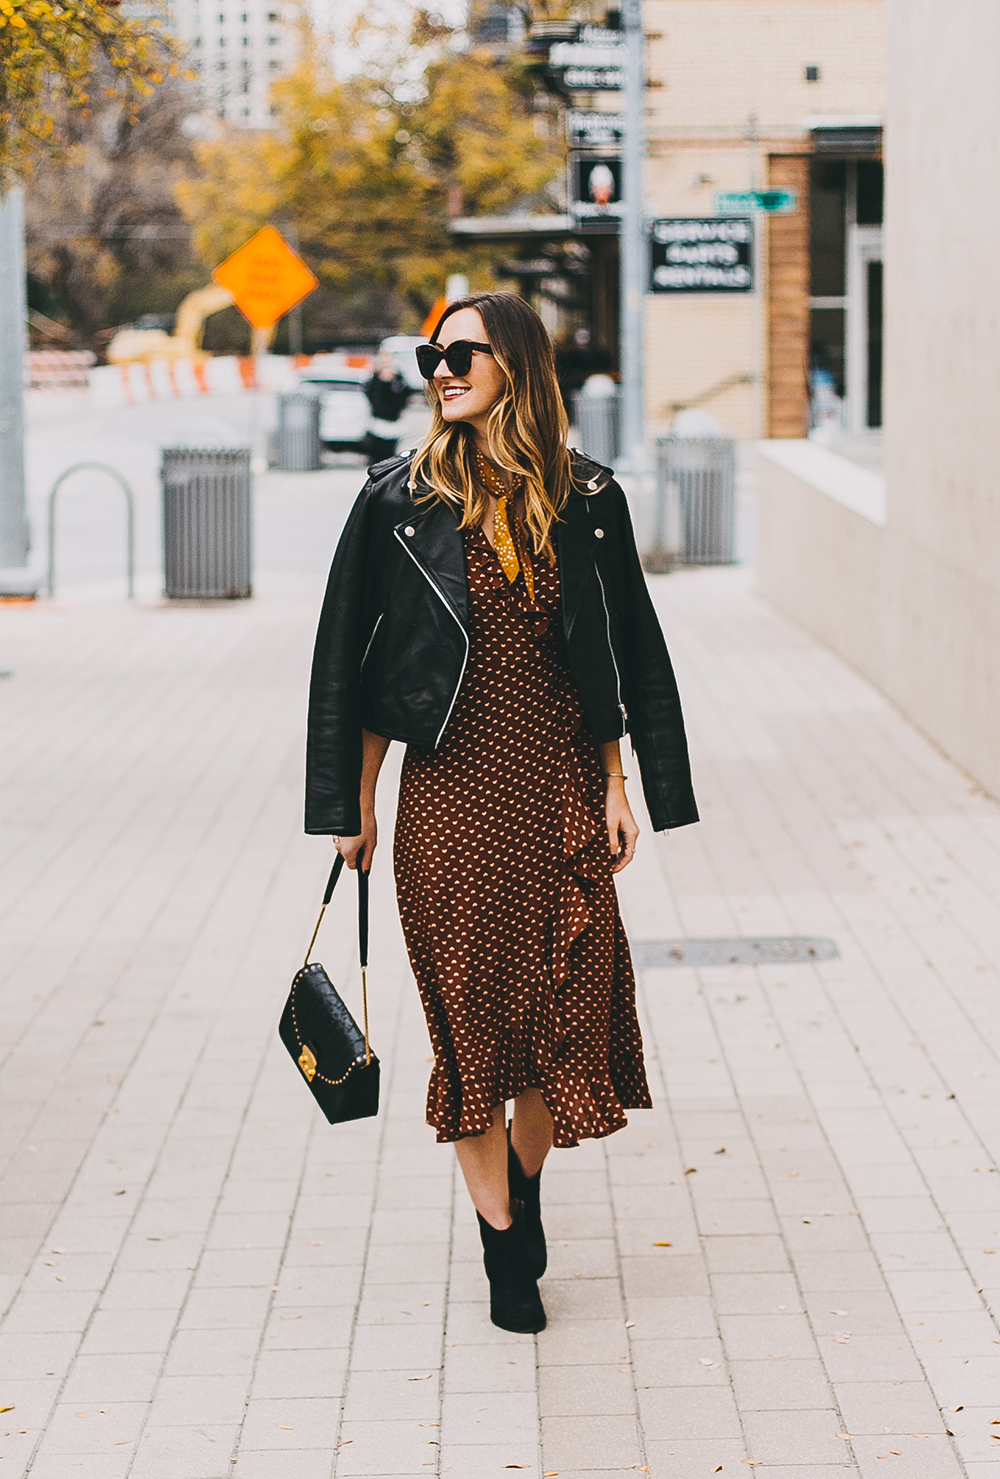 livvyland-blog-olivia-watson-austin-texas-fashion-blogger-urban-outfitters-wrap-dress-sezane-leather-jacket-fall-outfit-idea-8